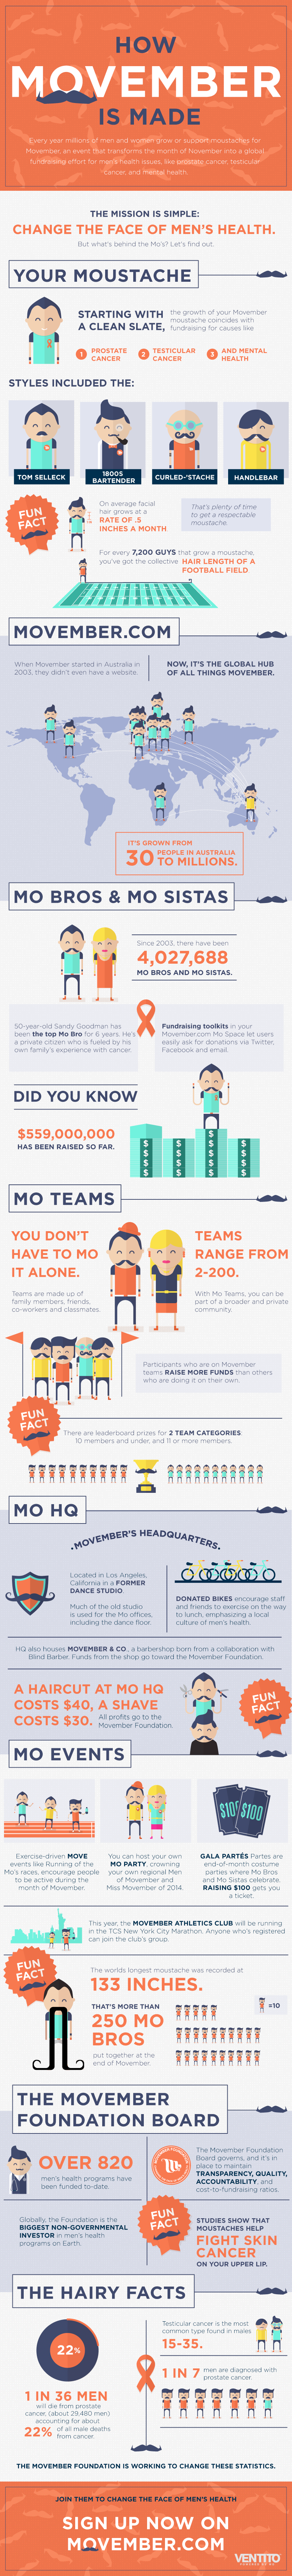 Infographic: How Movember is Made